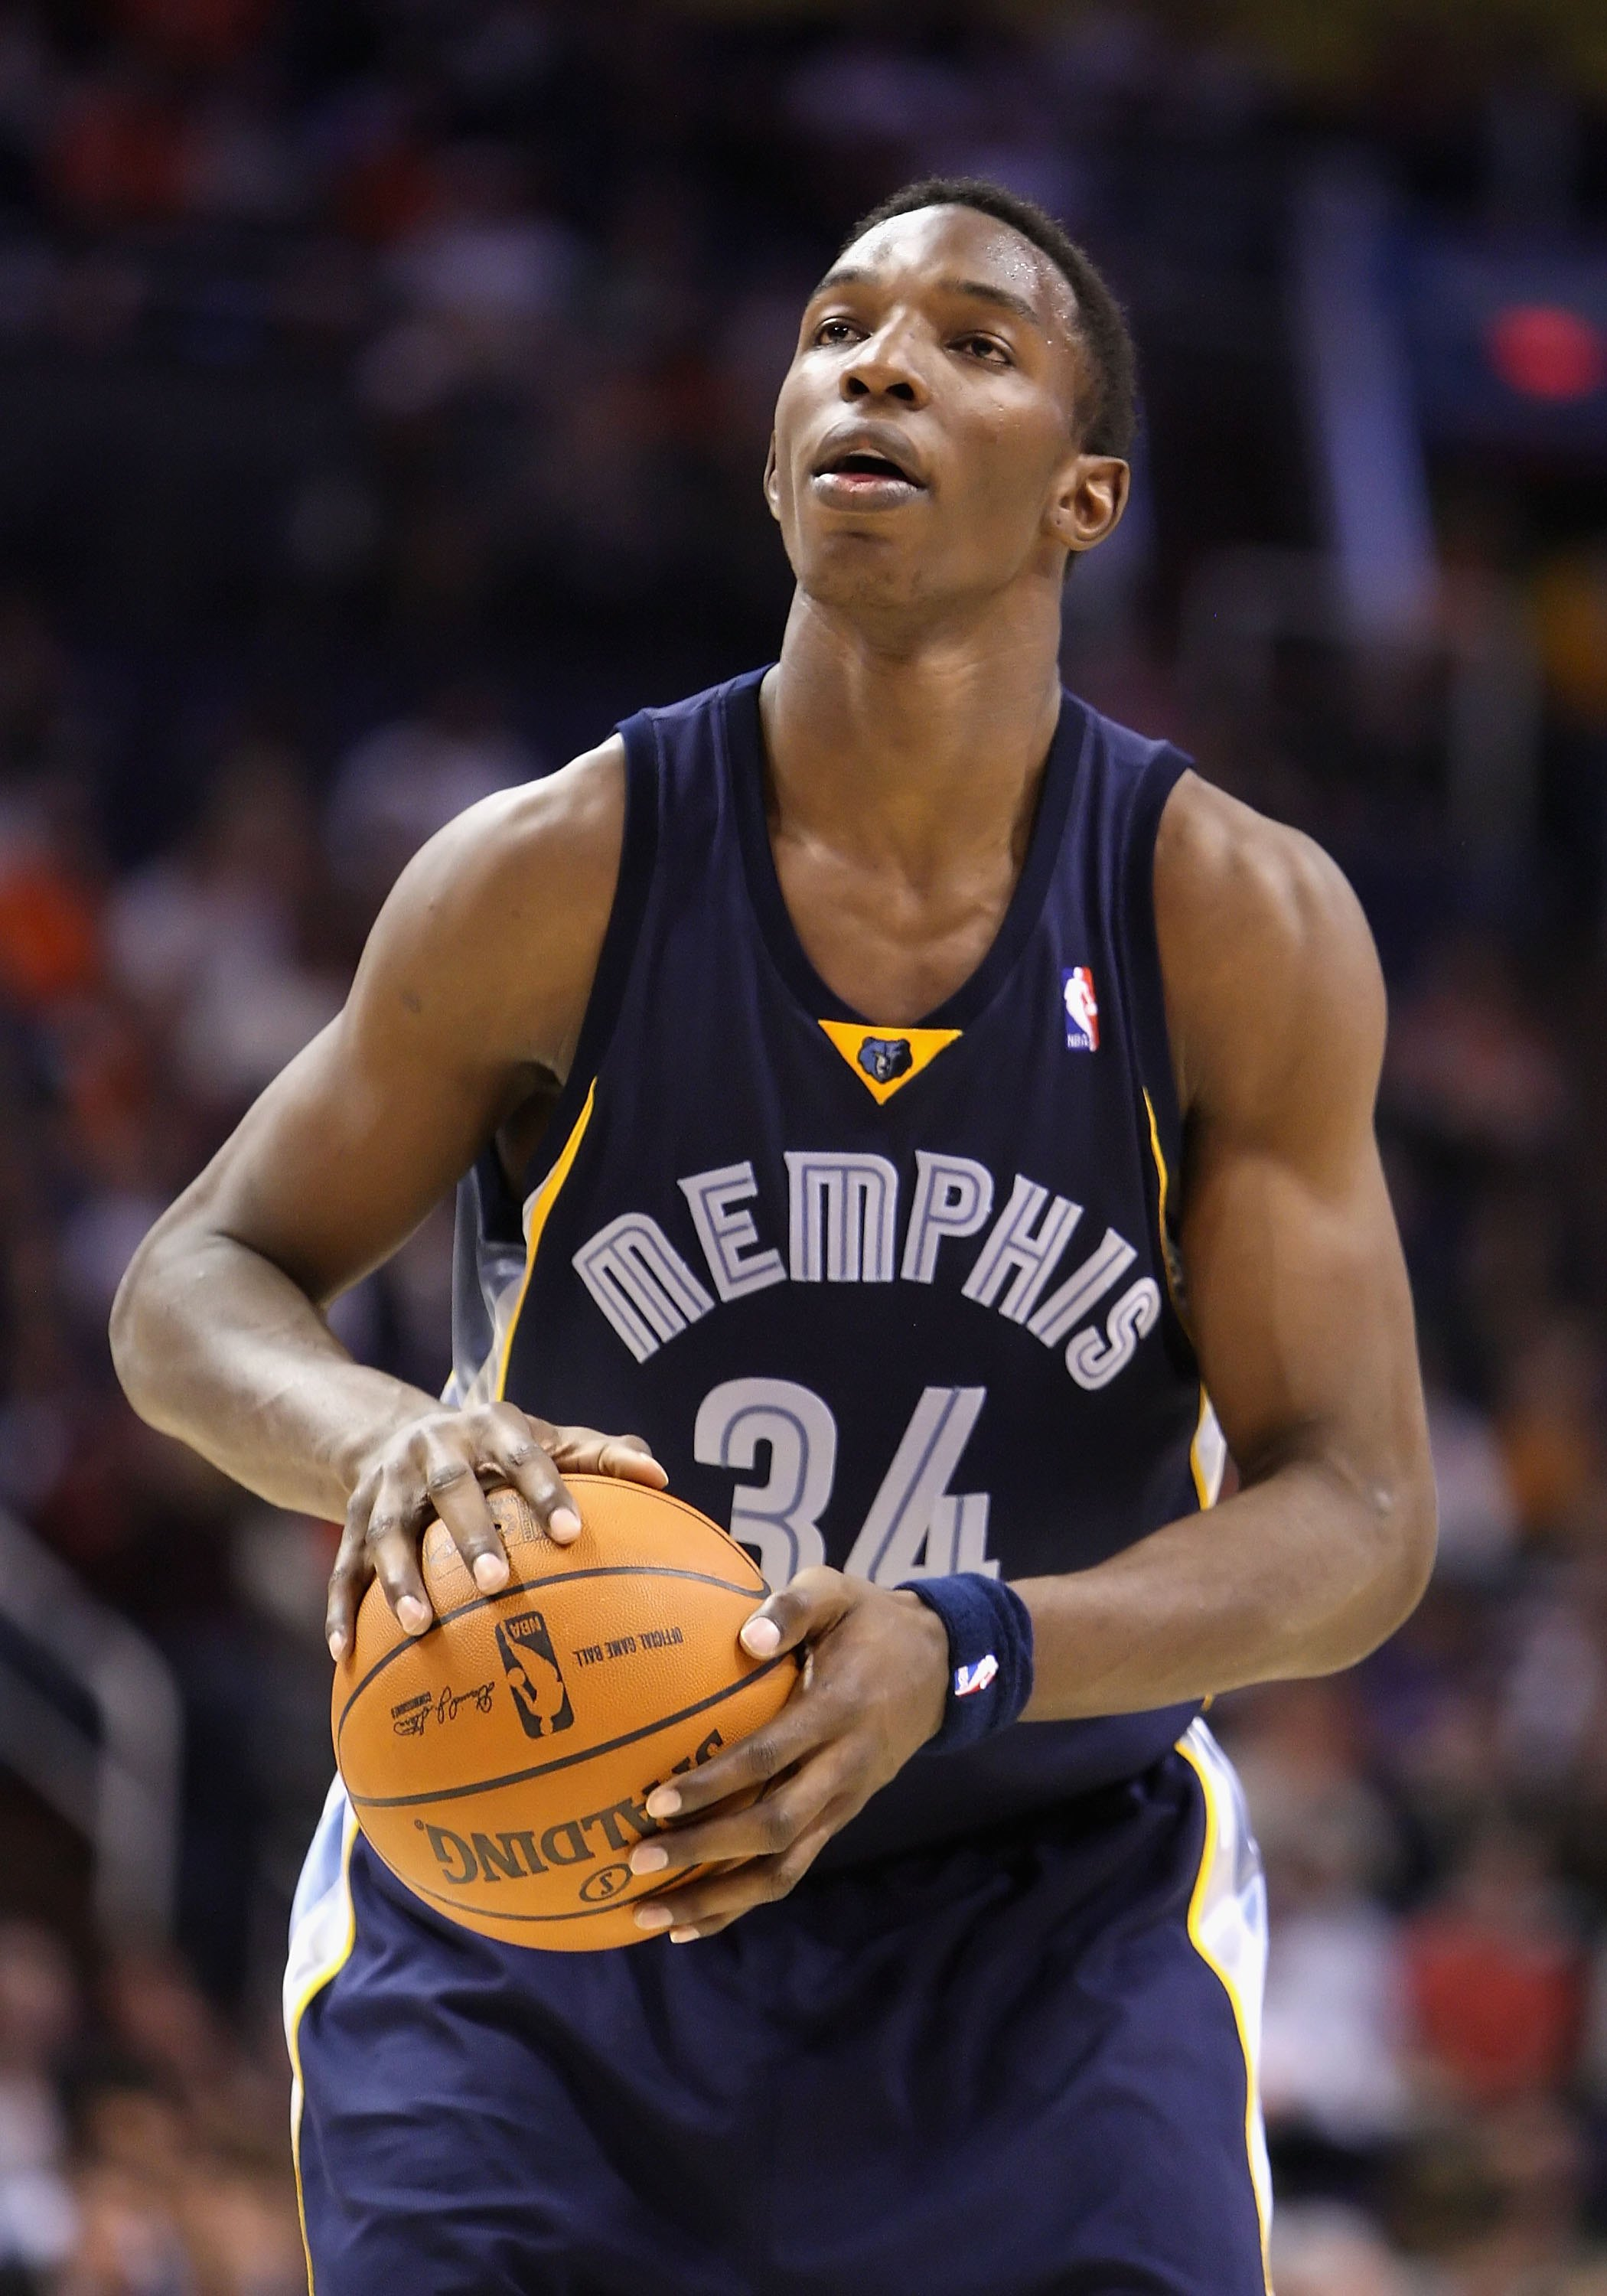 PHOENIX - NOVEMBER 25:  Hasheem Thabeet #34 of the Memphis Grizzlies shoots a free throw shot during the NBA game against the Phoenix Suns at US Airways Center on November 25, 2009 in Phoenix, Arizona.  The Suns defeated the Grizzlies 126-111.  NOTE TO US